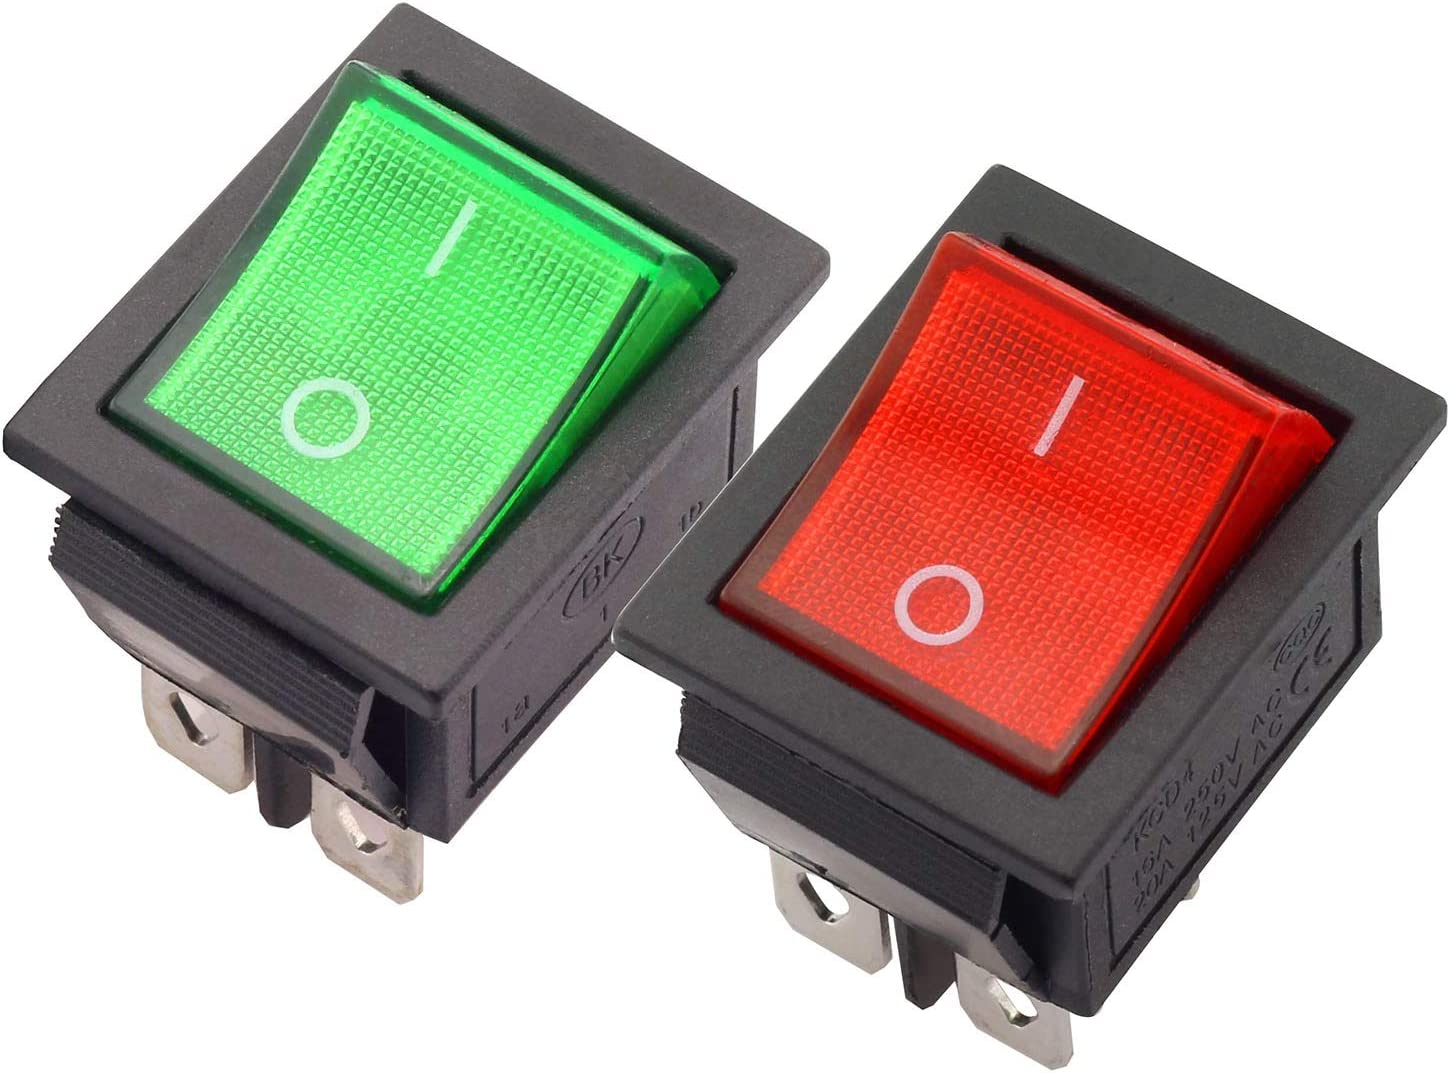 Magic&shell 2-Pack Rocker Power Switch 16A 250V AC 4 Pin 2 Position ON/Off Power Switch DPST Red/Green Button with Light